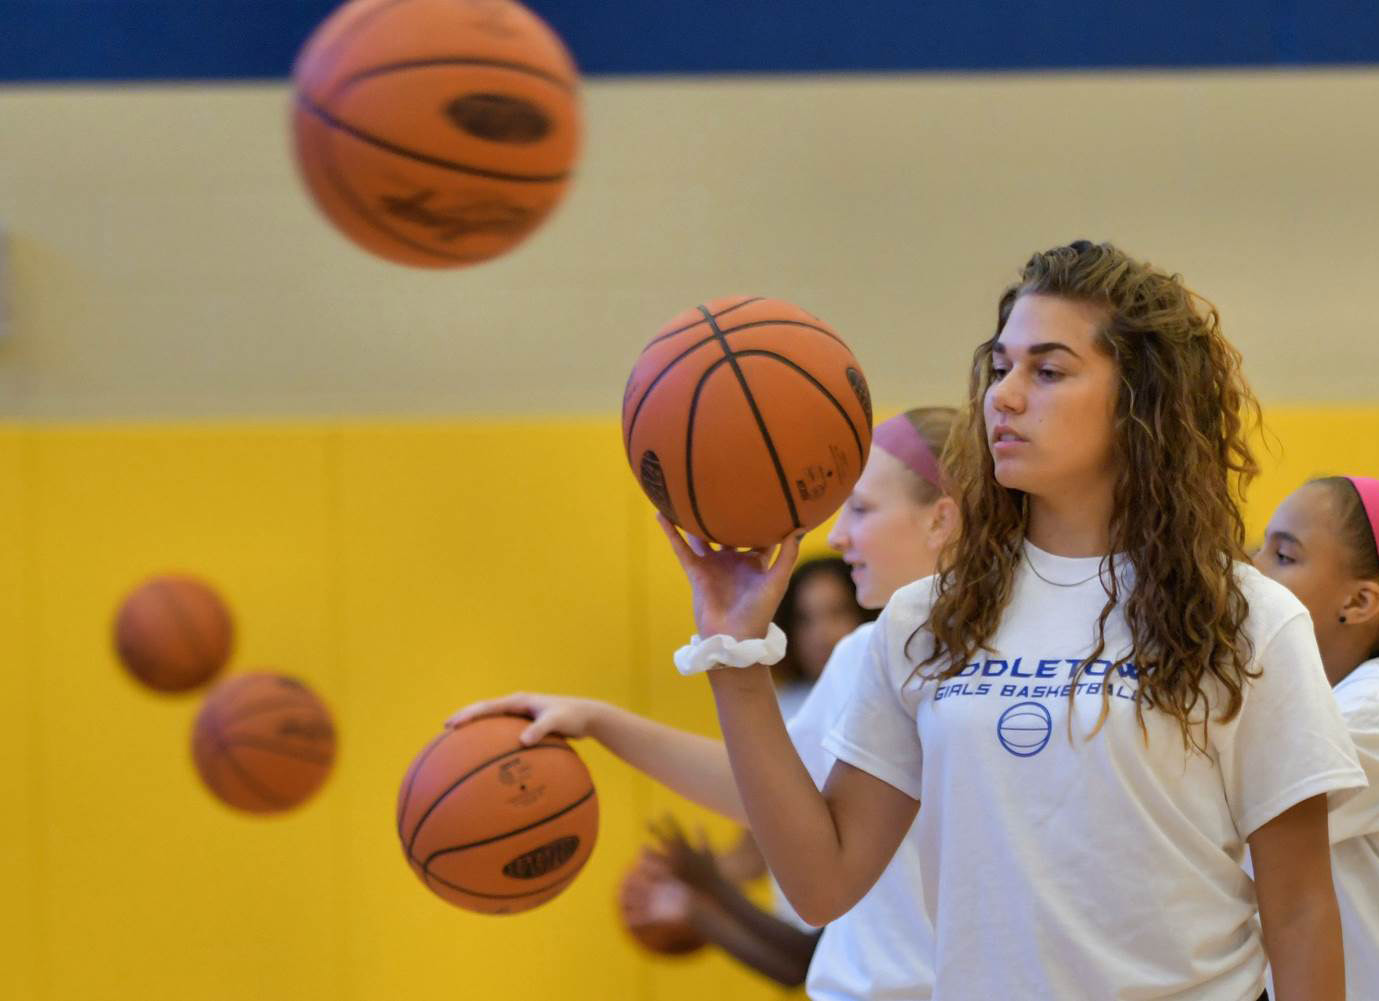 Basketballs surround Makaila Nester.